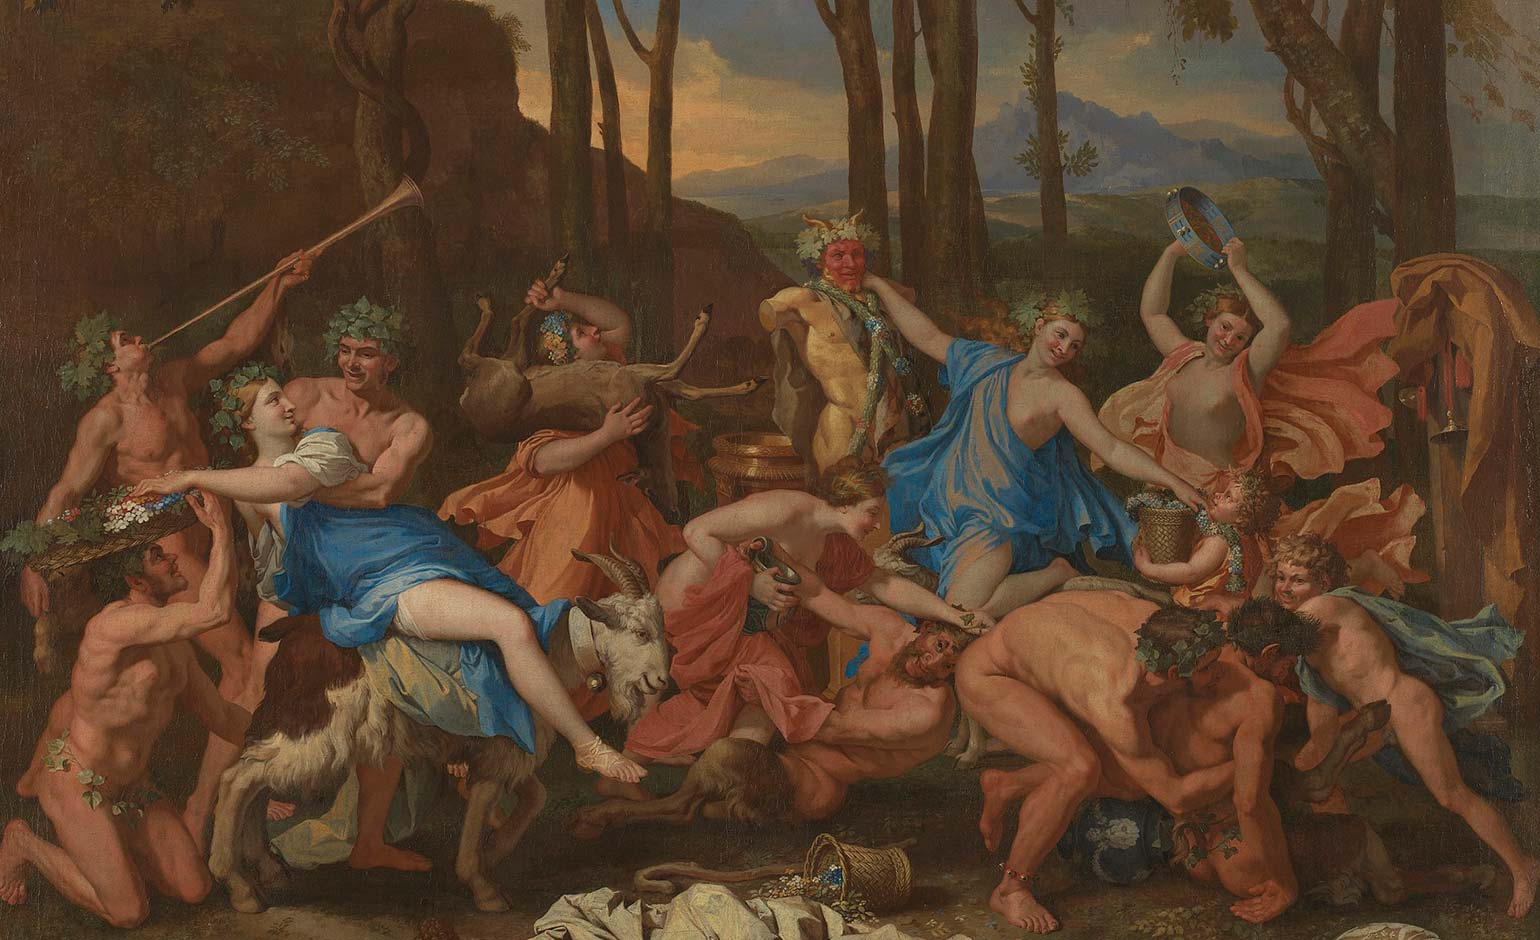 National Gallery masterpiece set to go on show at Bath's Victoria Art Gallery